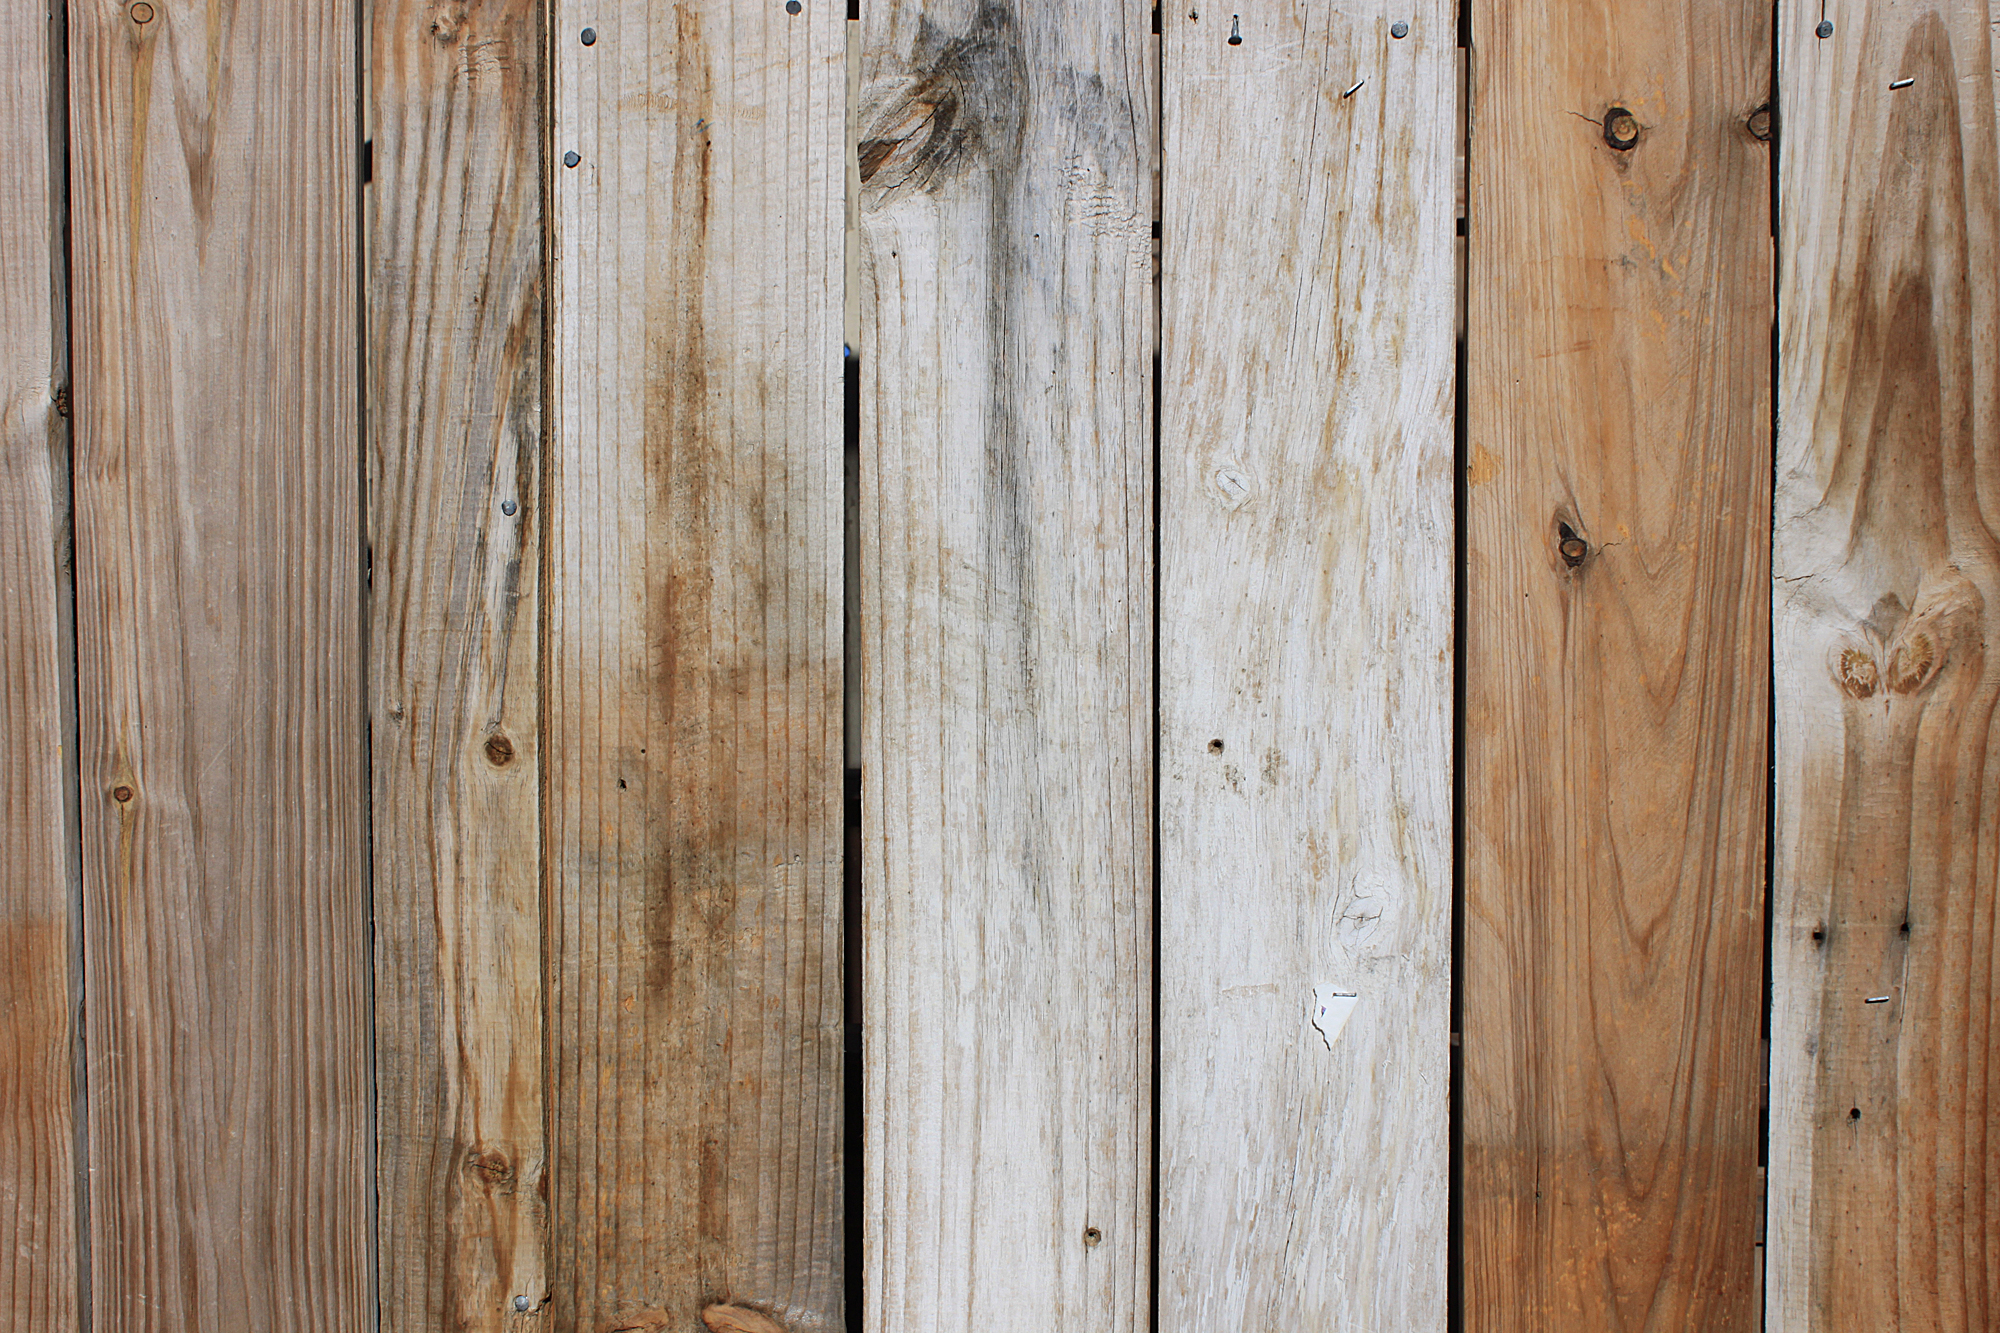 rustic wood background free - Ideal.vistalist.co